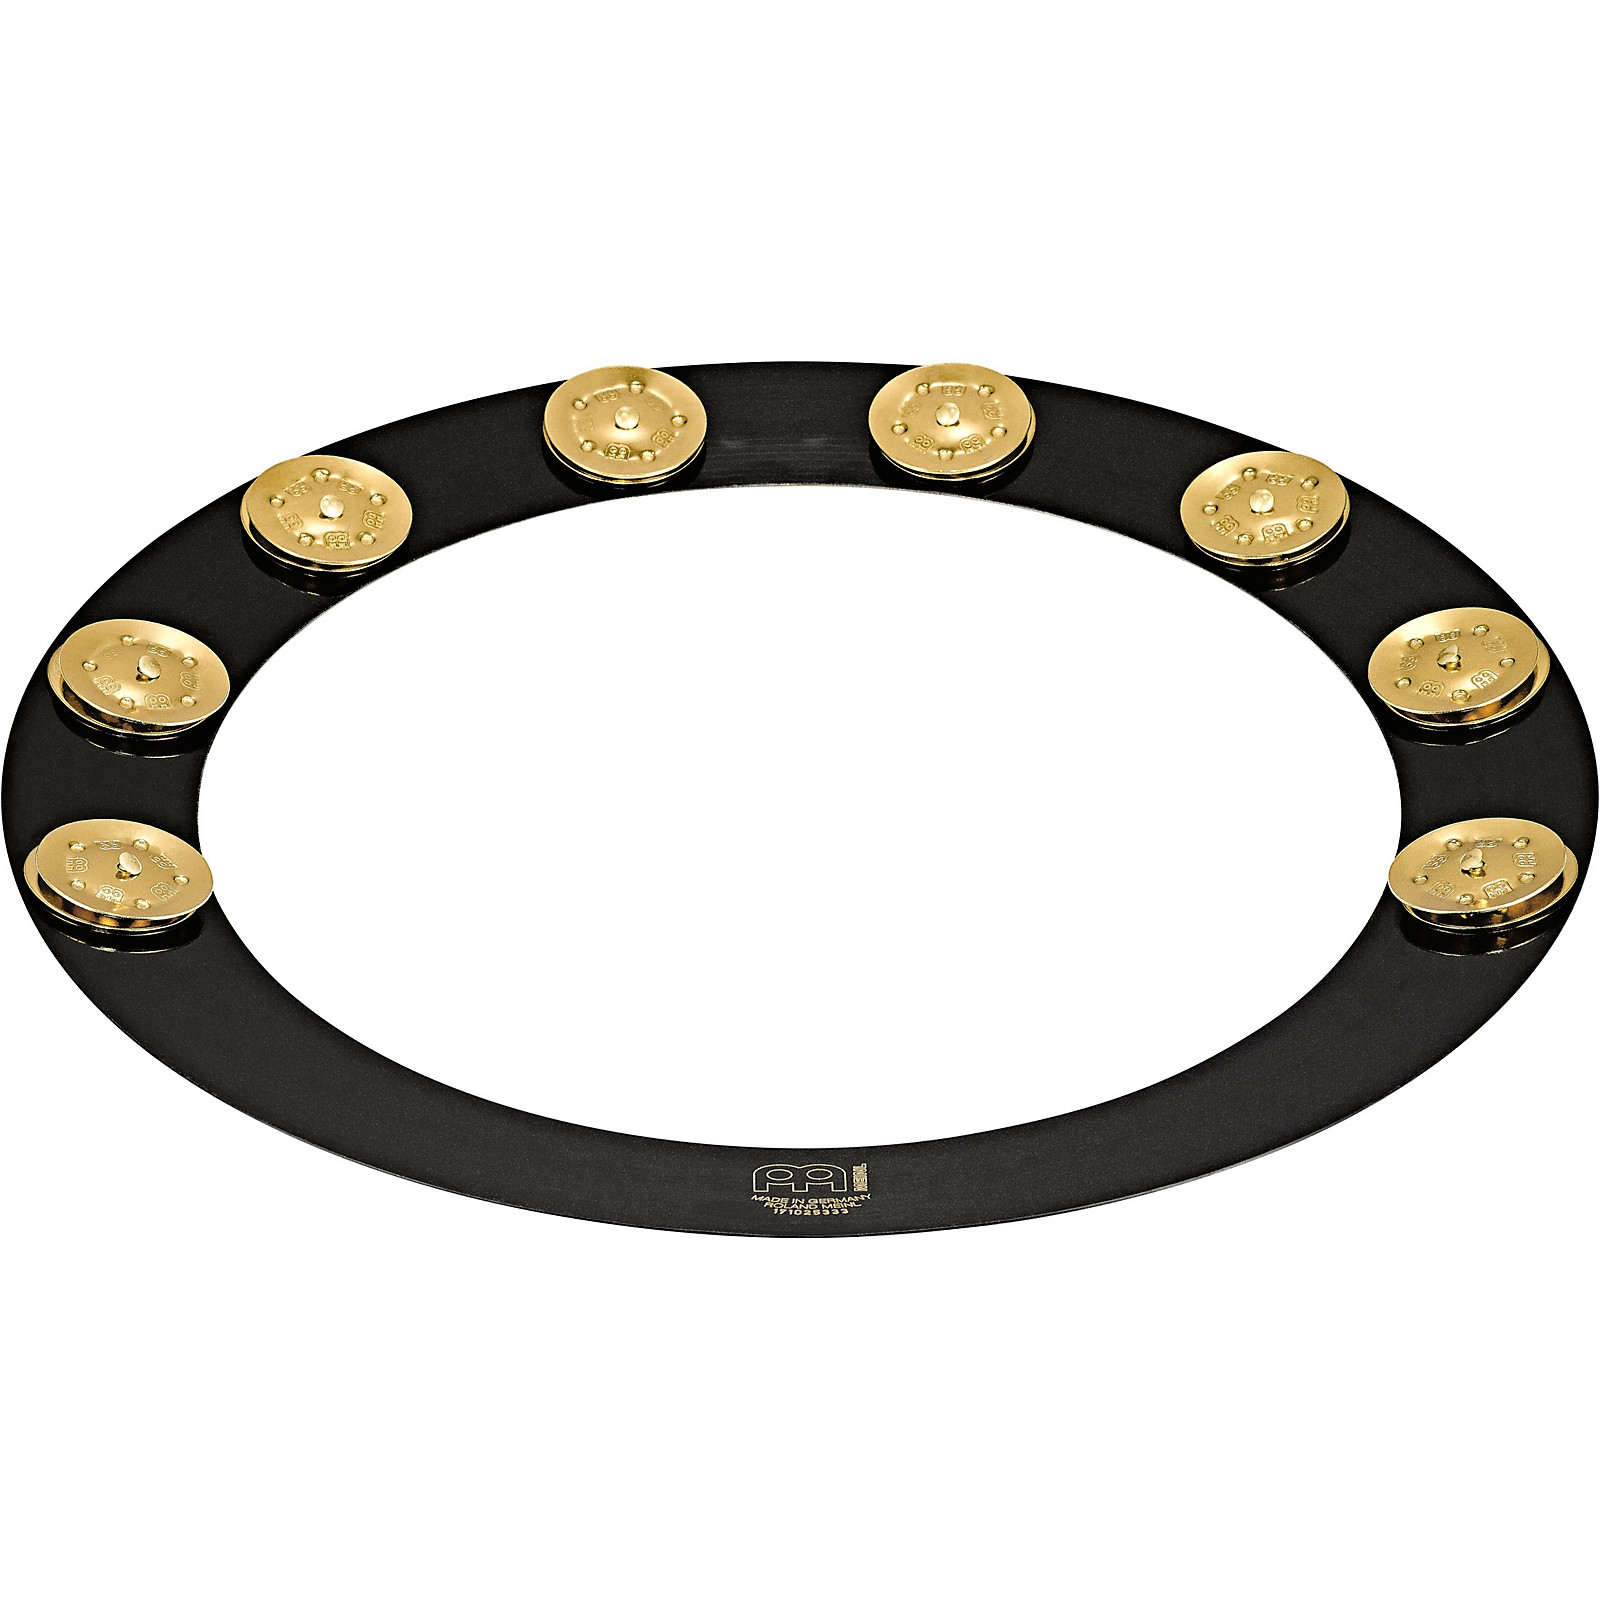 Meinl Backbeat Pro Tambourine with Brass Jingles, 14